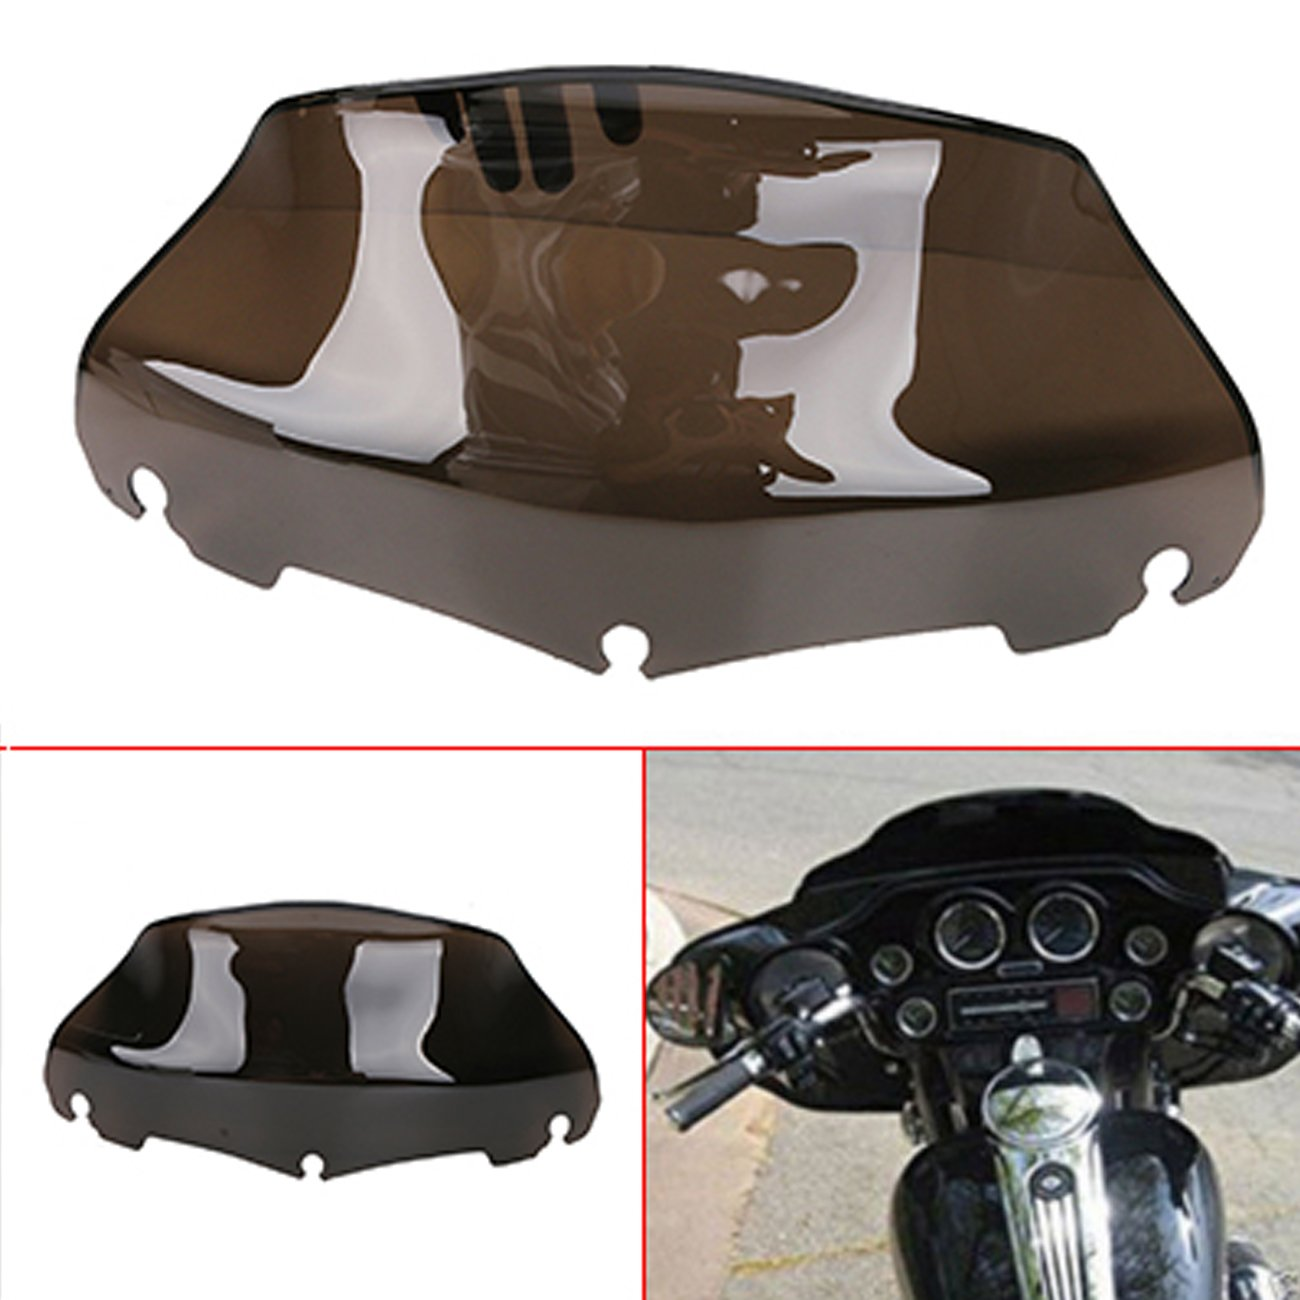 Motorcycle 9' Wave Windshield Windscreen with Smoked Dark for Harley FLHT FLHTC FLHX Touring 2014-2017 Espear